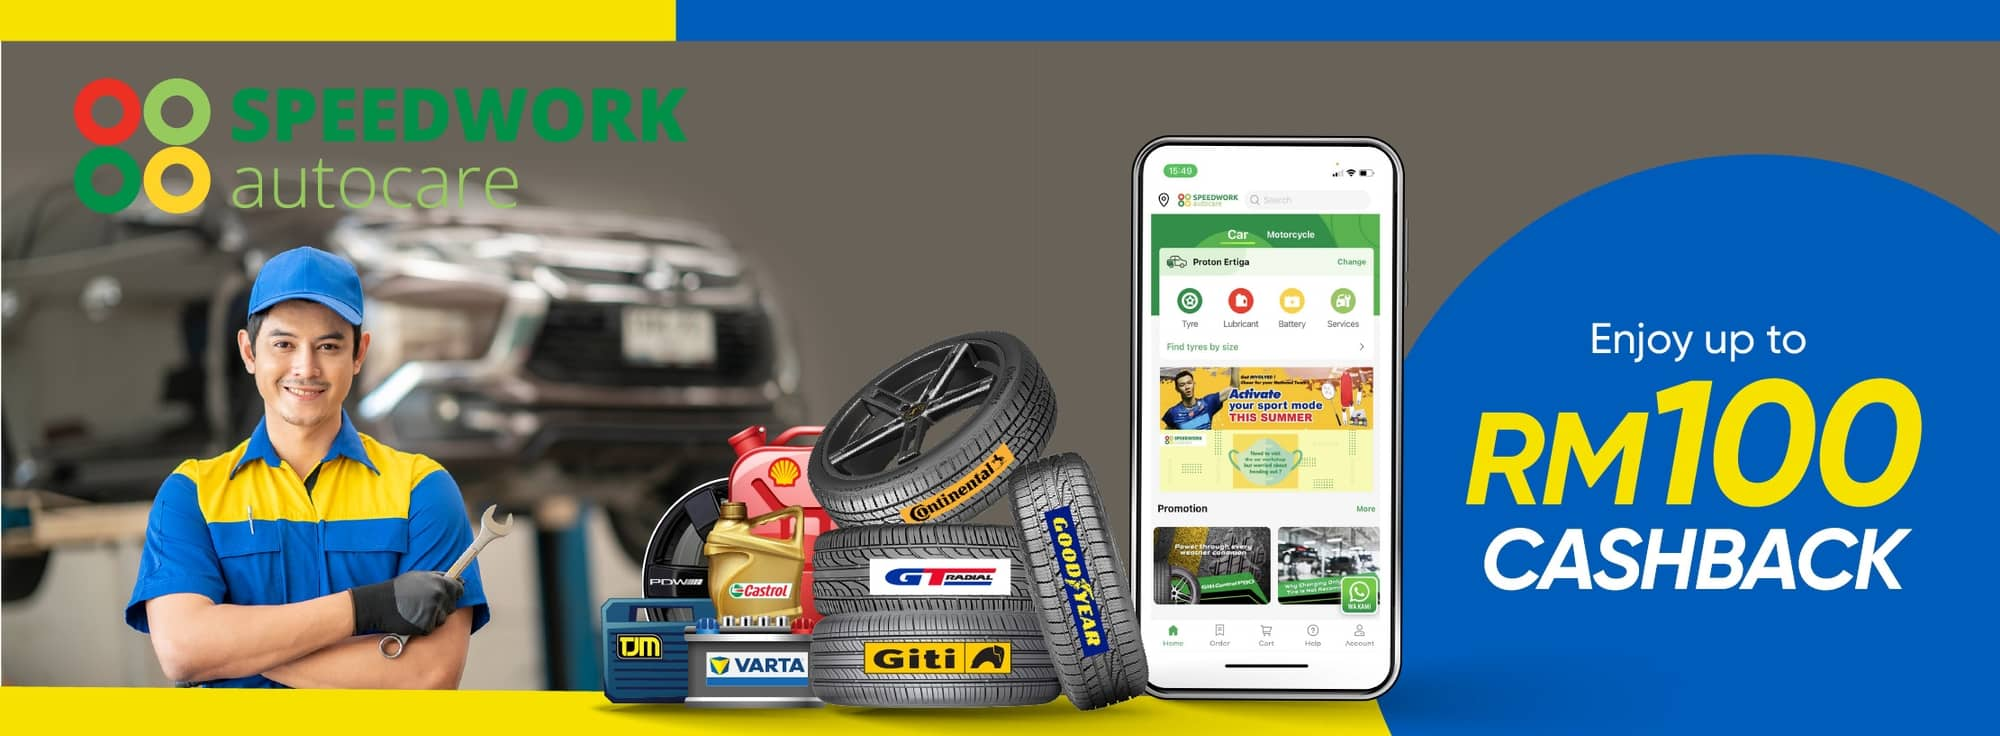 Go Cashless, Save $ and Stay safe by using Speedwork Autocare